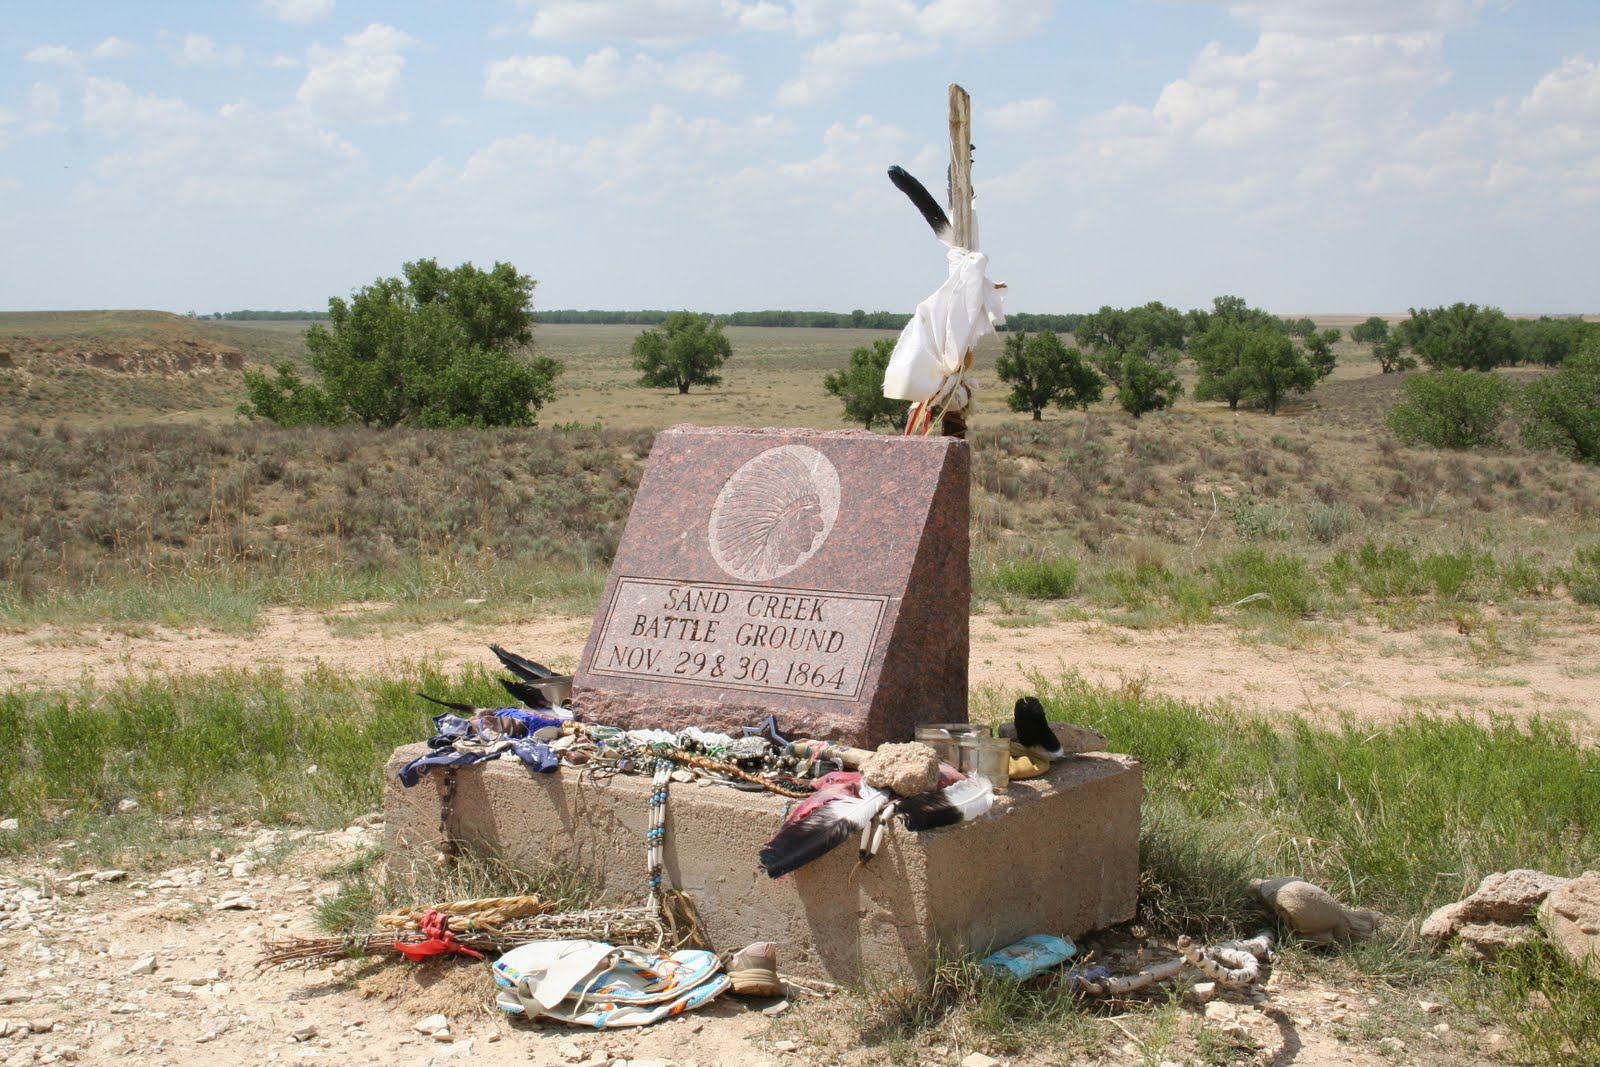 the sand creek massacre On nov 29, 1864, along an ice-covered creek on the colorado territory's eastern plains, bill tall bull lost his grandpa peace-minded cheyenne chief white antelope was probably tall bull's great-great-grandfather, but he calls him grandpa tall bull learned about the sand creek massacre not.